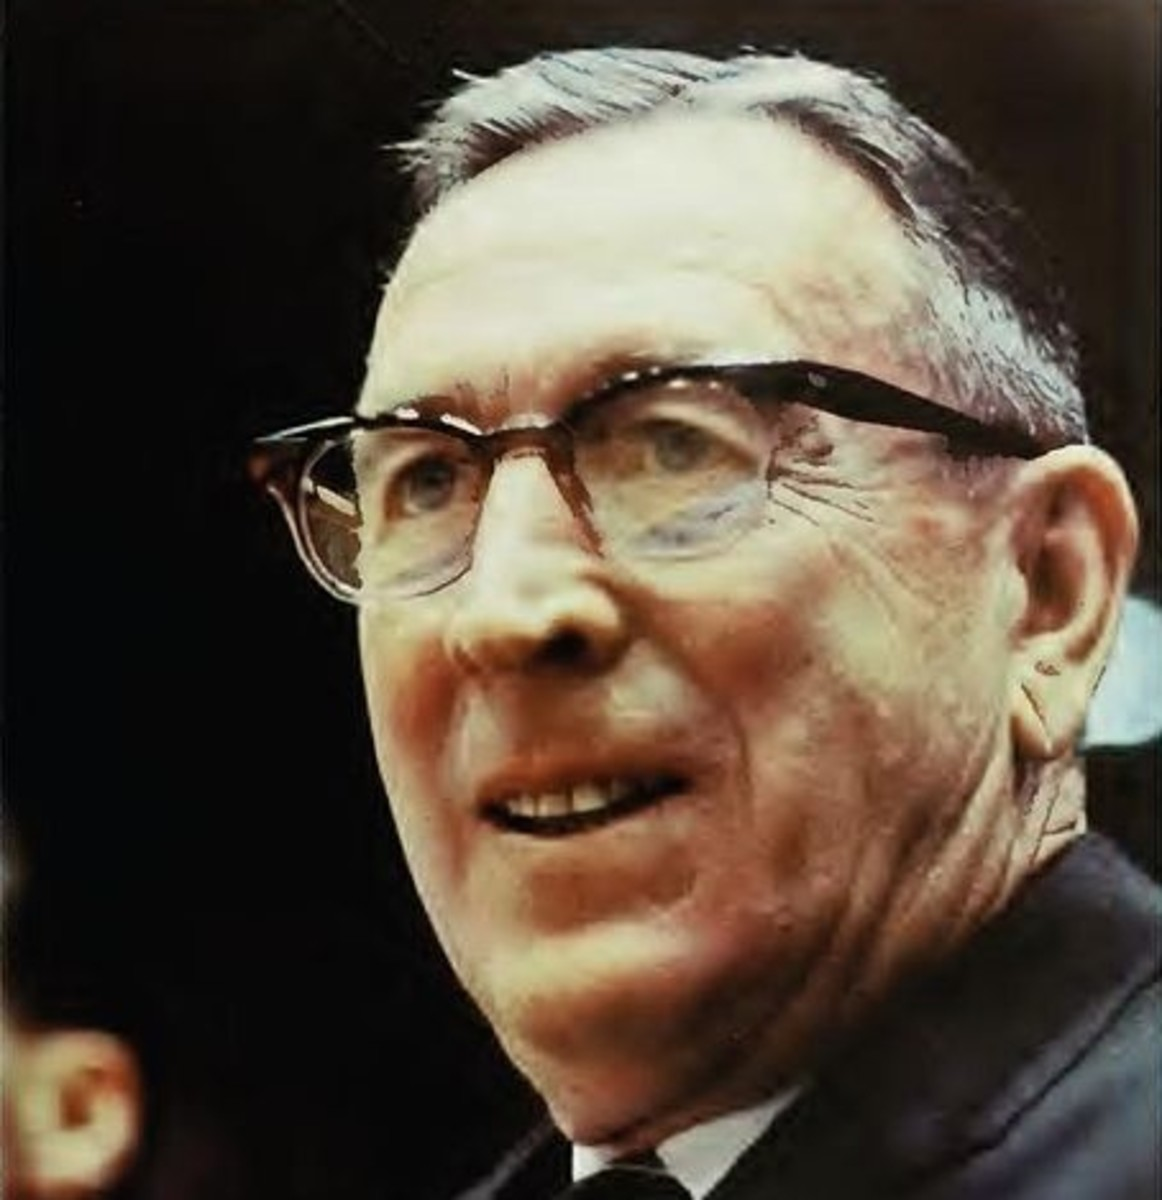 Coach John Wooden (photo circa 1972) guided UCLA from 1948–1975, including 10 national championships, an 88-game winning streak, and two other winning streaks of 40+ games.